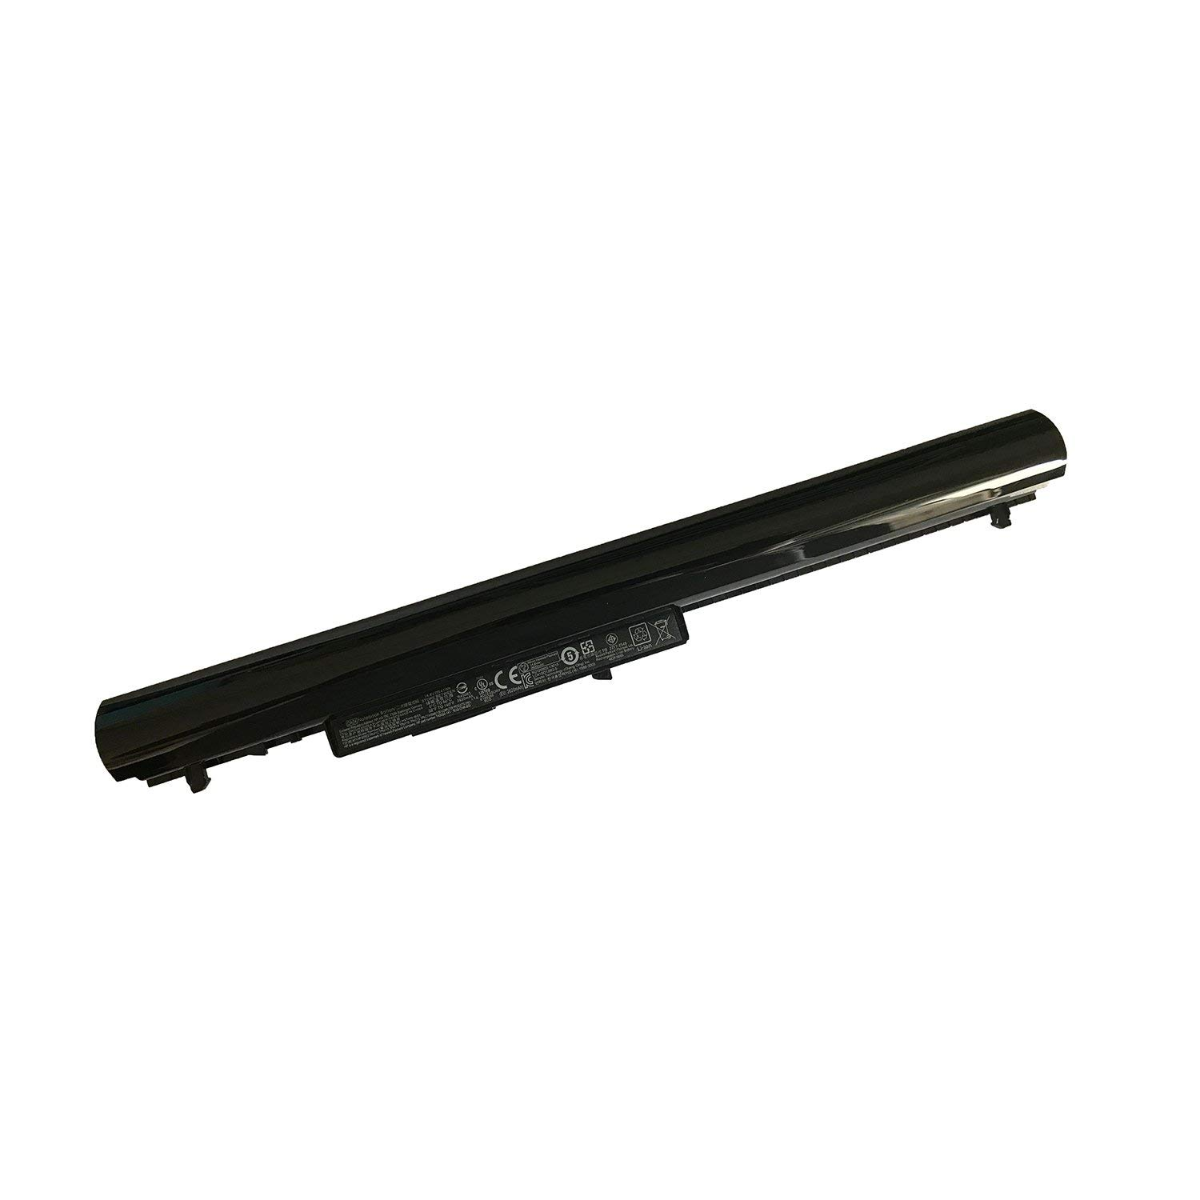 Μπαταρία Laptop - Battery for HP 15-R212NV 15-R212TU 15-R212TX 15-R213NA 15-R213NIA 15-R213NK 15-R213NL 15-R213NS 15-R213NT 15-R213TU 15-R213TX OEM Υψηλής ποιότητας (Κωδ.1-BAT0002)